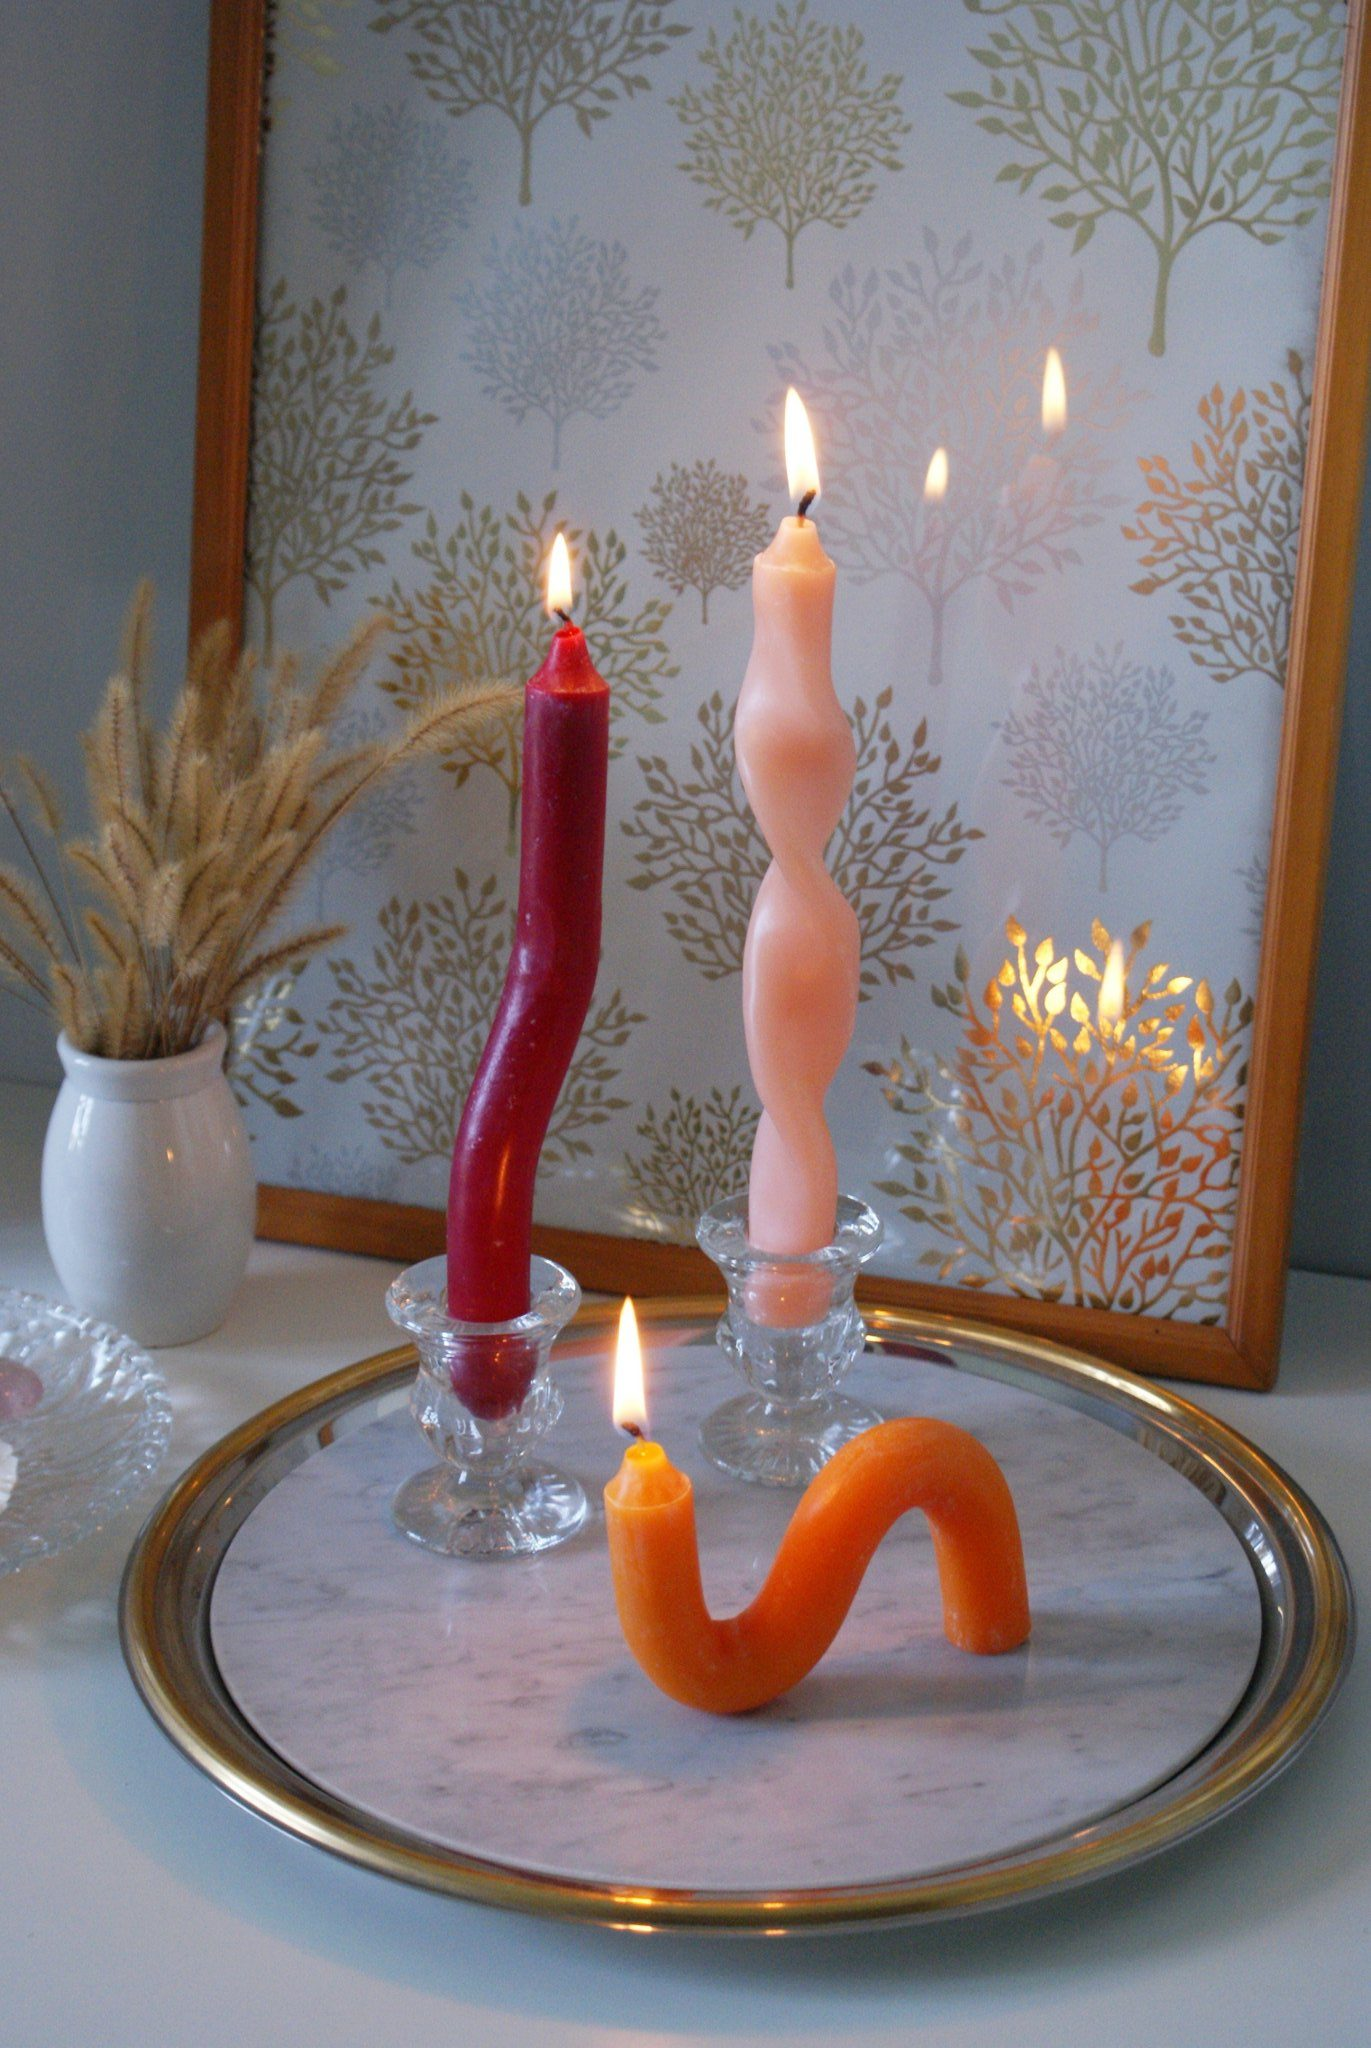 diy aesthetic twisted candles how make home decoration decorate fell idea craft easy tutorial sculpture francinesplaceblog 9